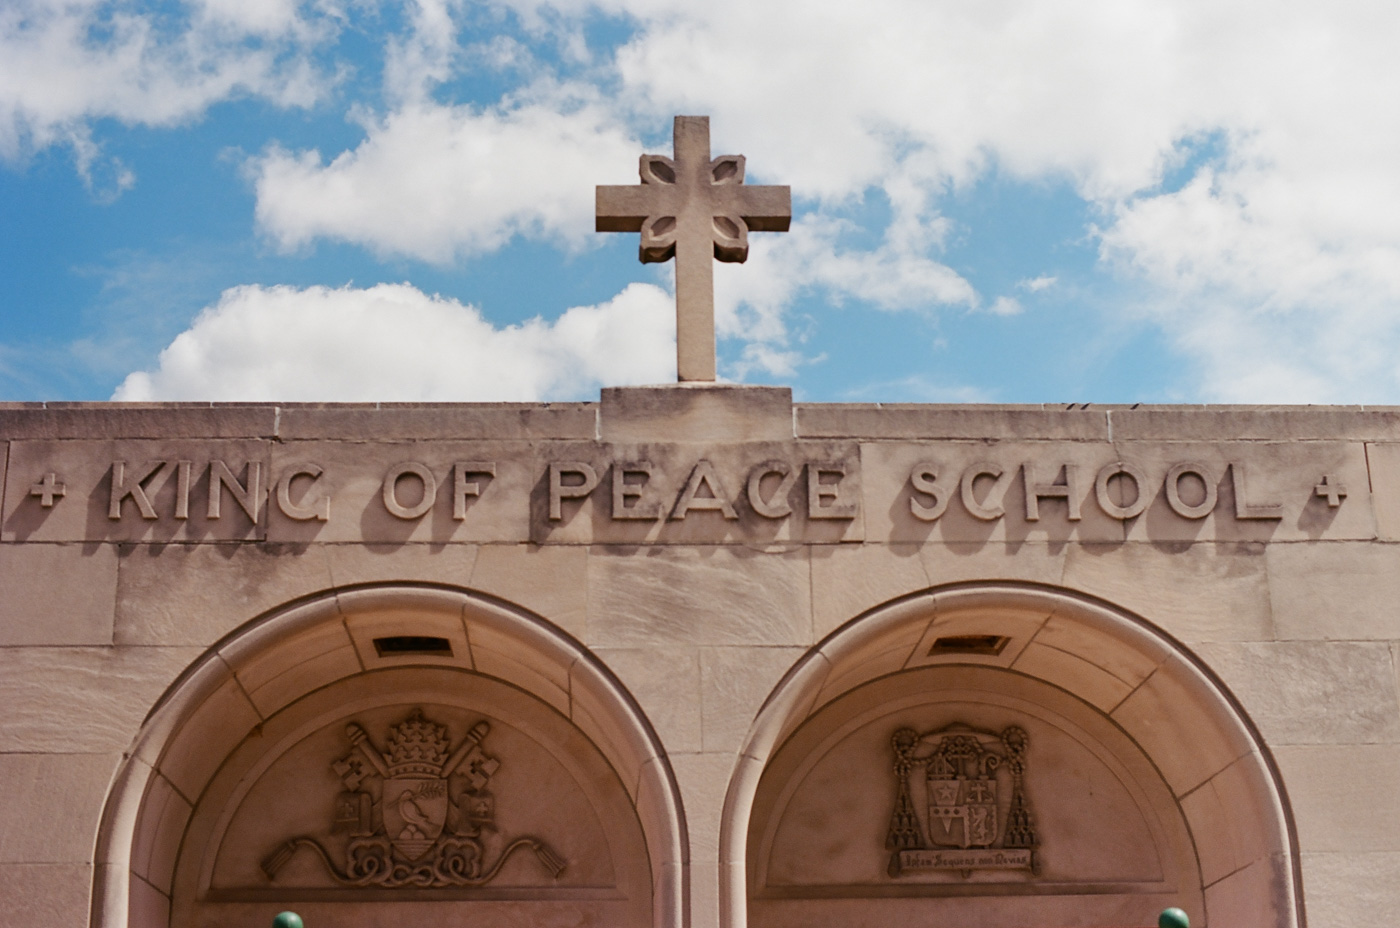 King of Peace School